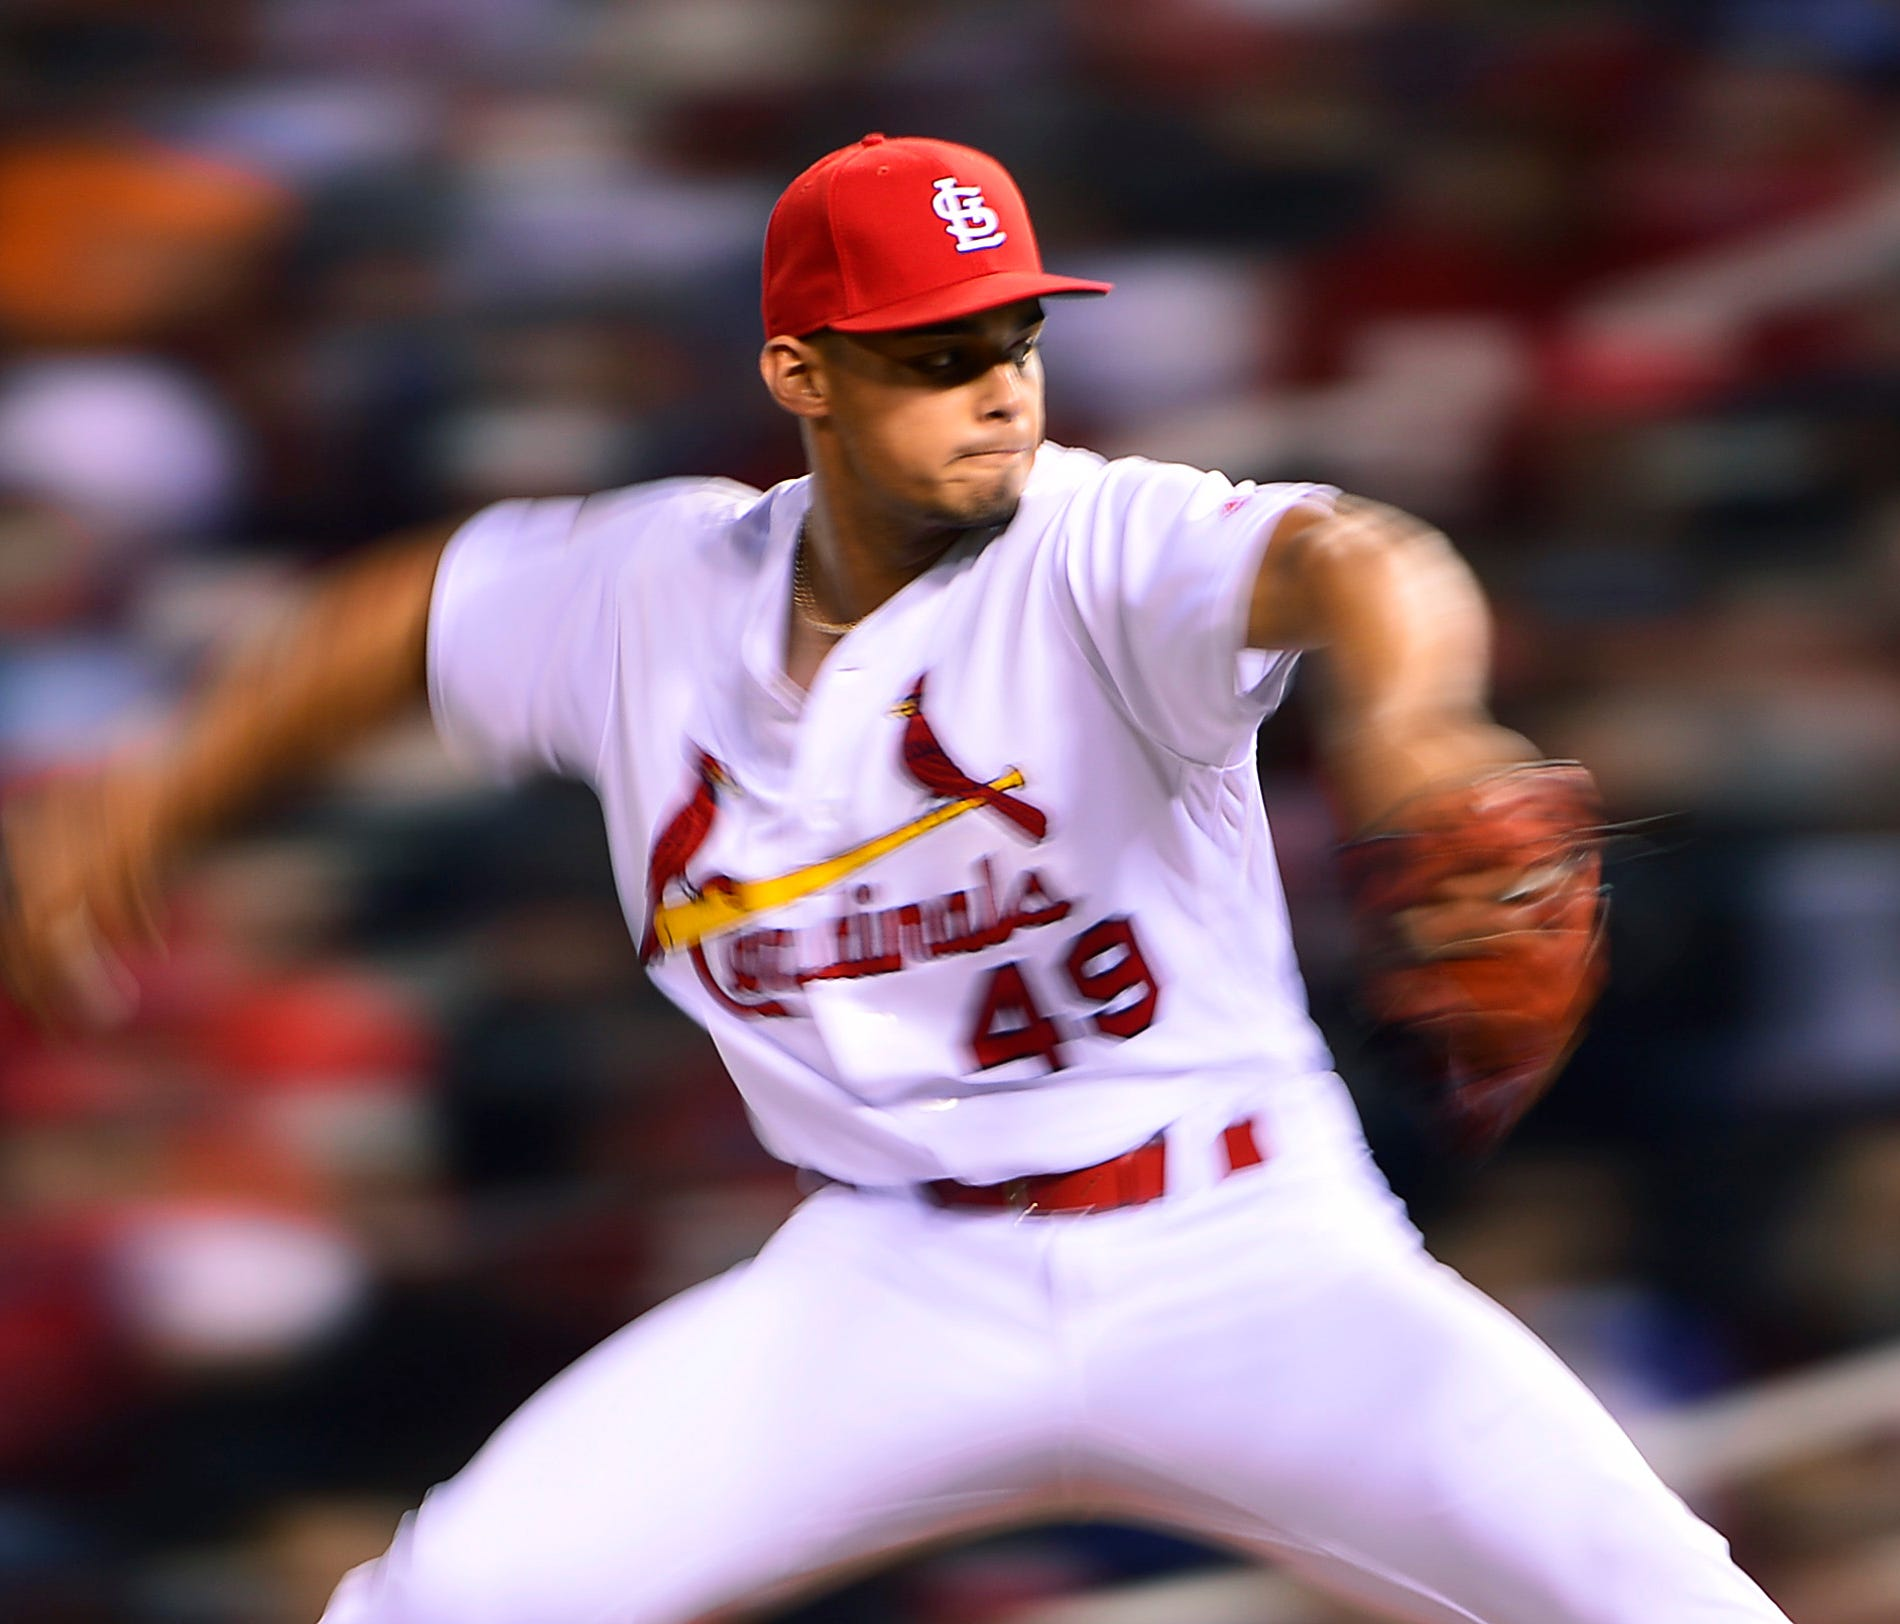 Cardinals reliever Jordan Hicks may look like a blur to opposing hitters. He hit 105 mph with a pair of pitches on Sunday vs. Philadelphia.